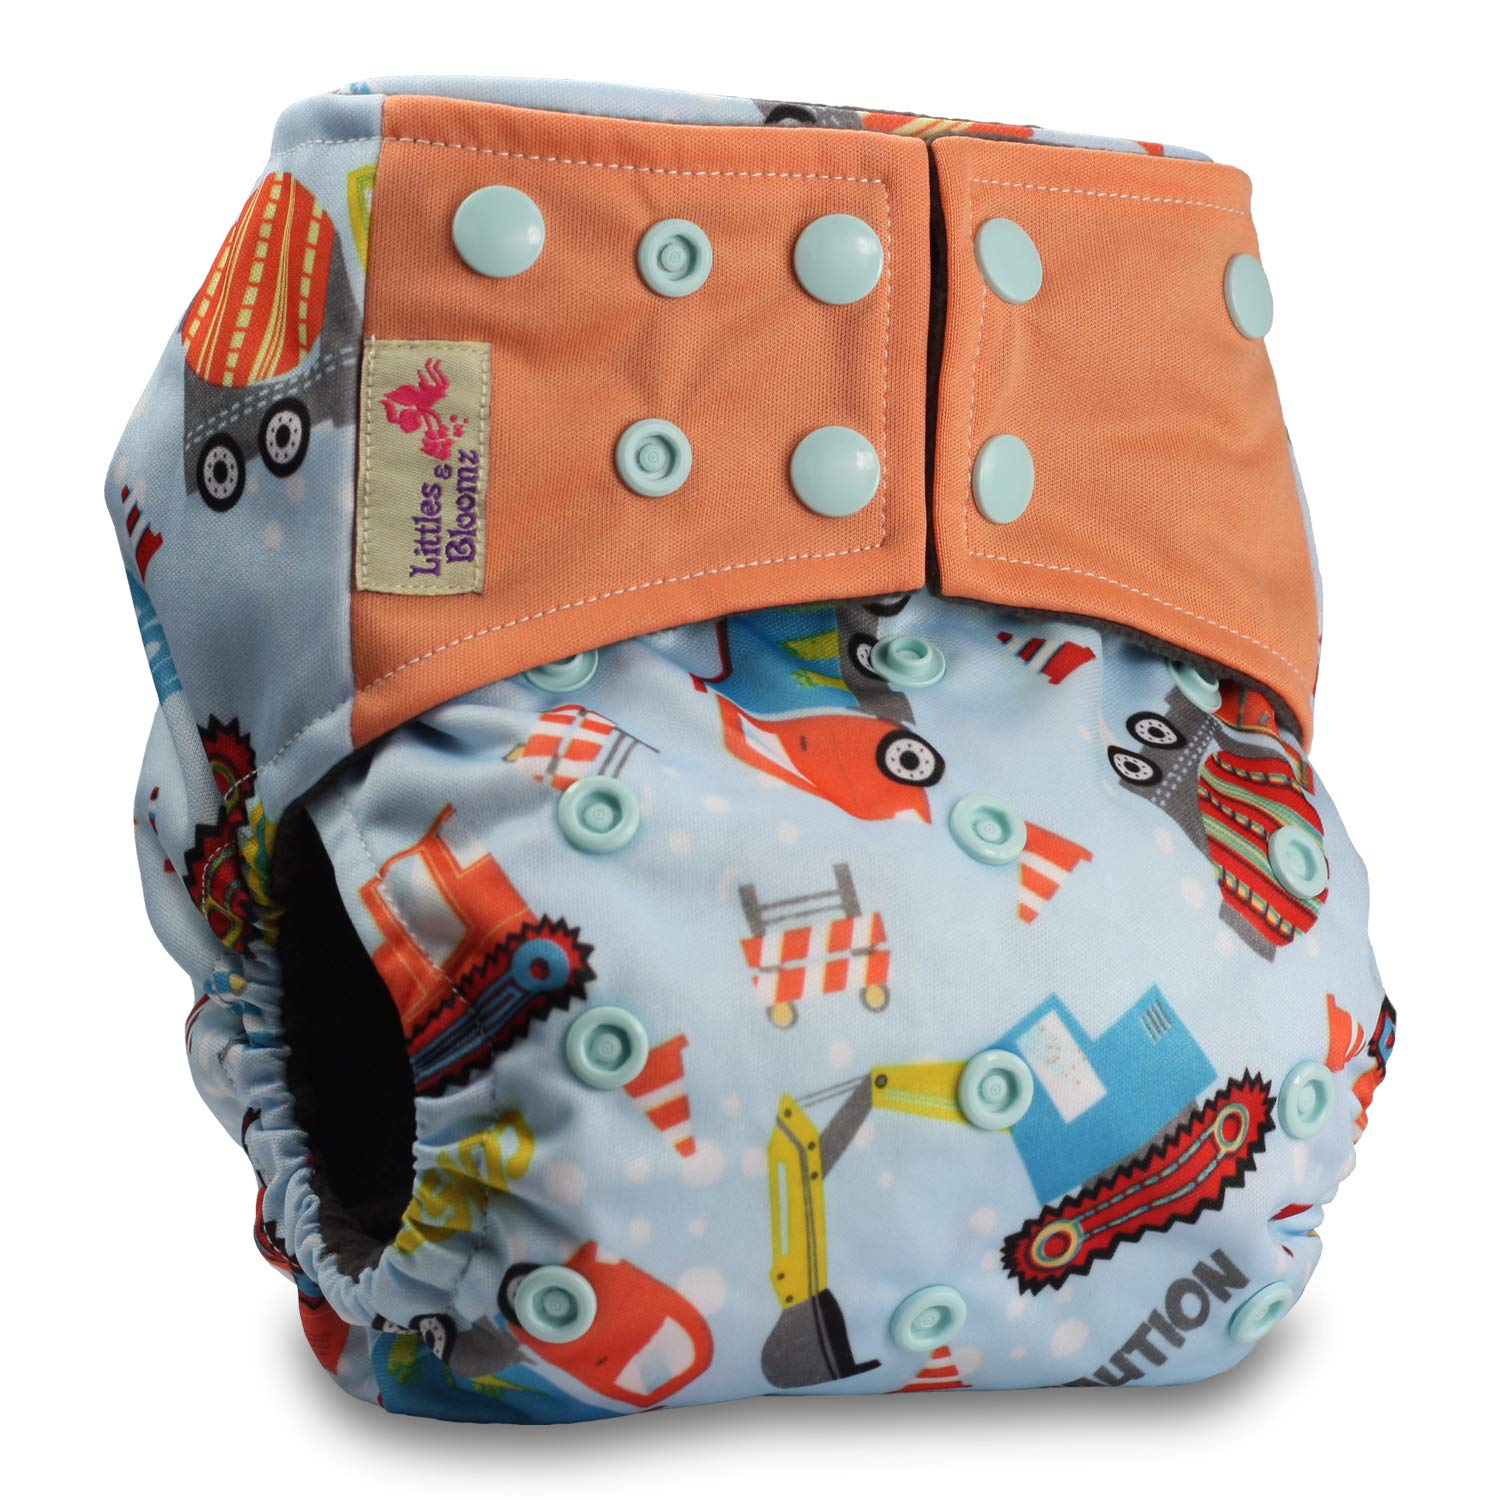 Without Insert Littles /& Bloomz Pattern 17 Reusable Pocket Real Cloth Nappy Washable Diaper Bamboo Charcoal